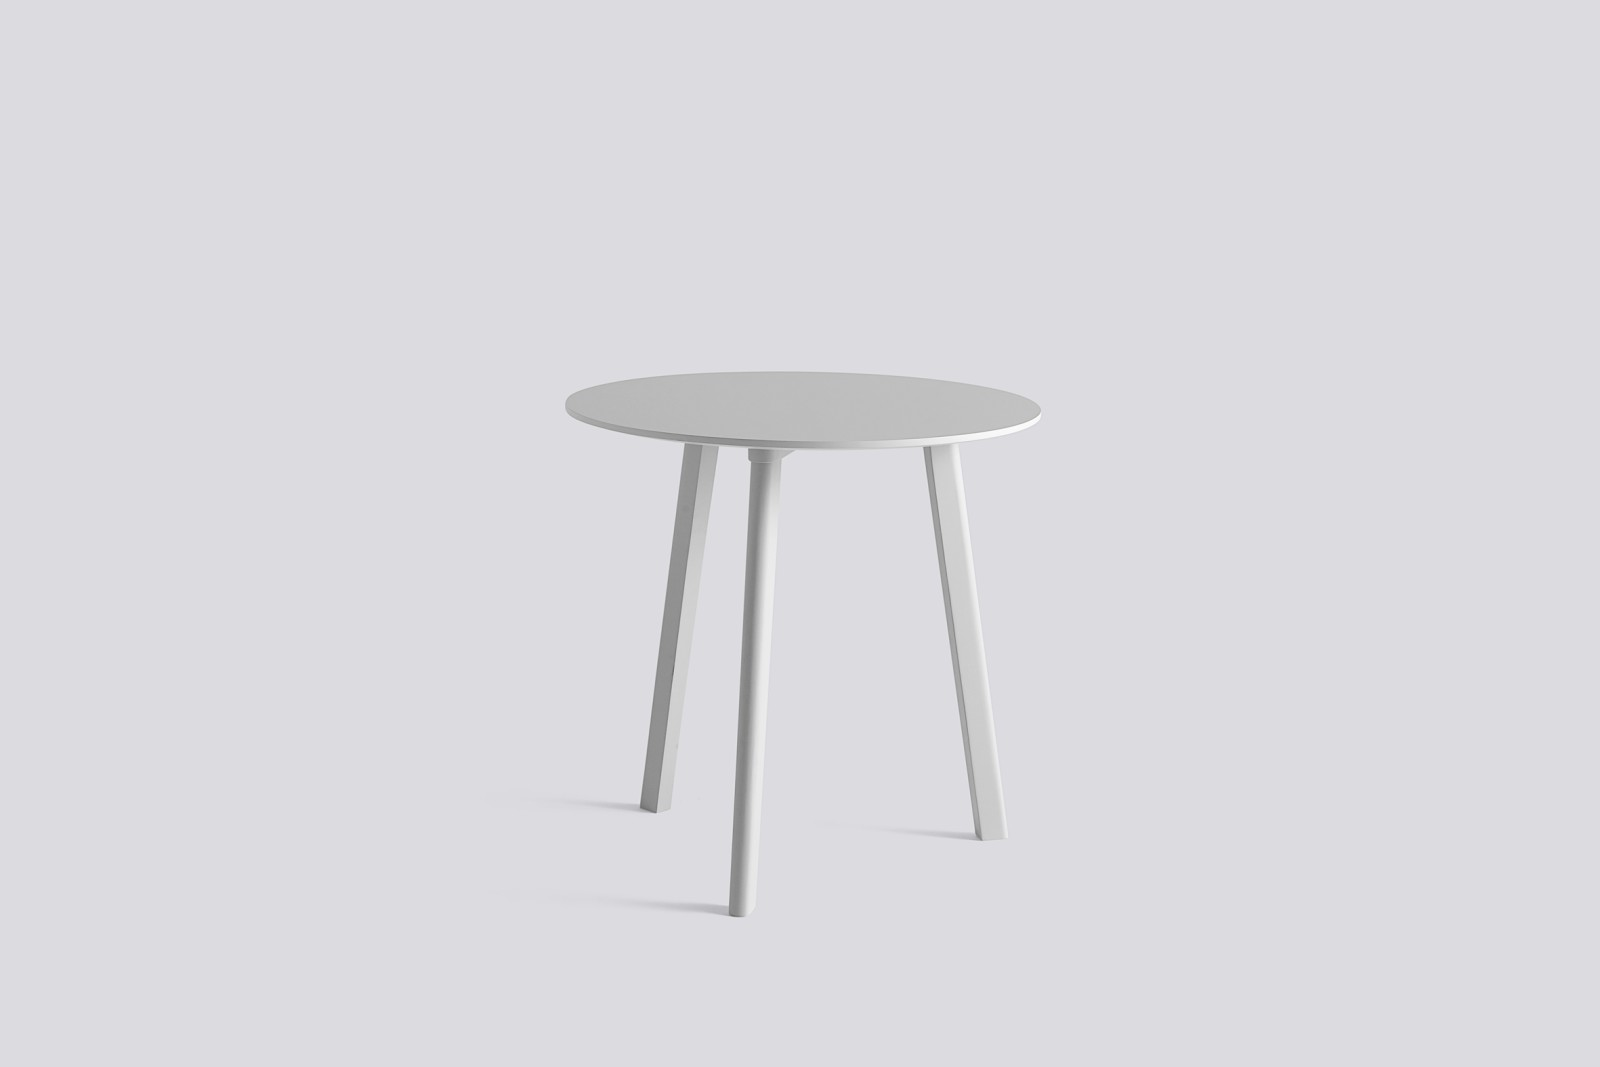 Copenhague Deux (CPH 220) Round Dining Table Pearl White Laminate Top, Pearl White Beech Base, 75 cm